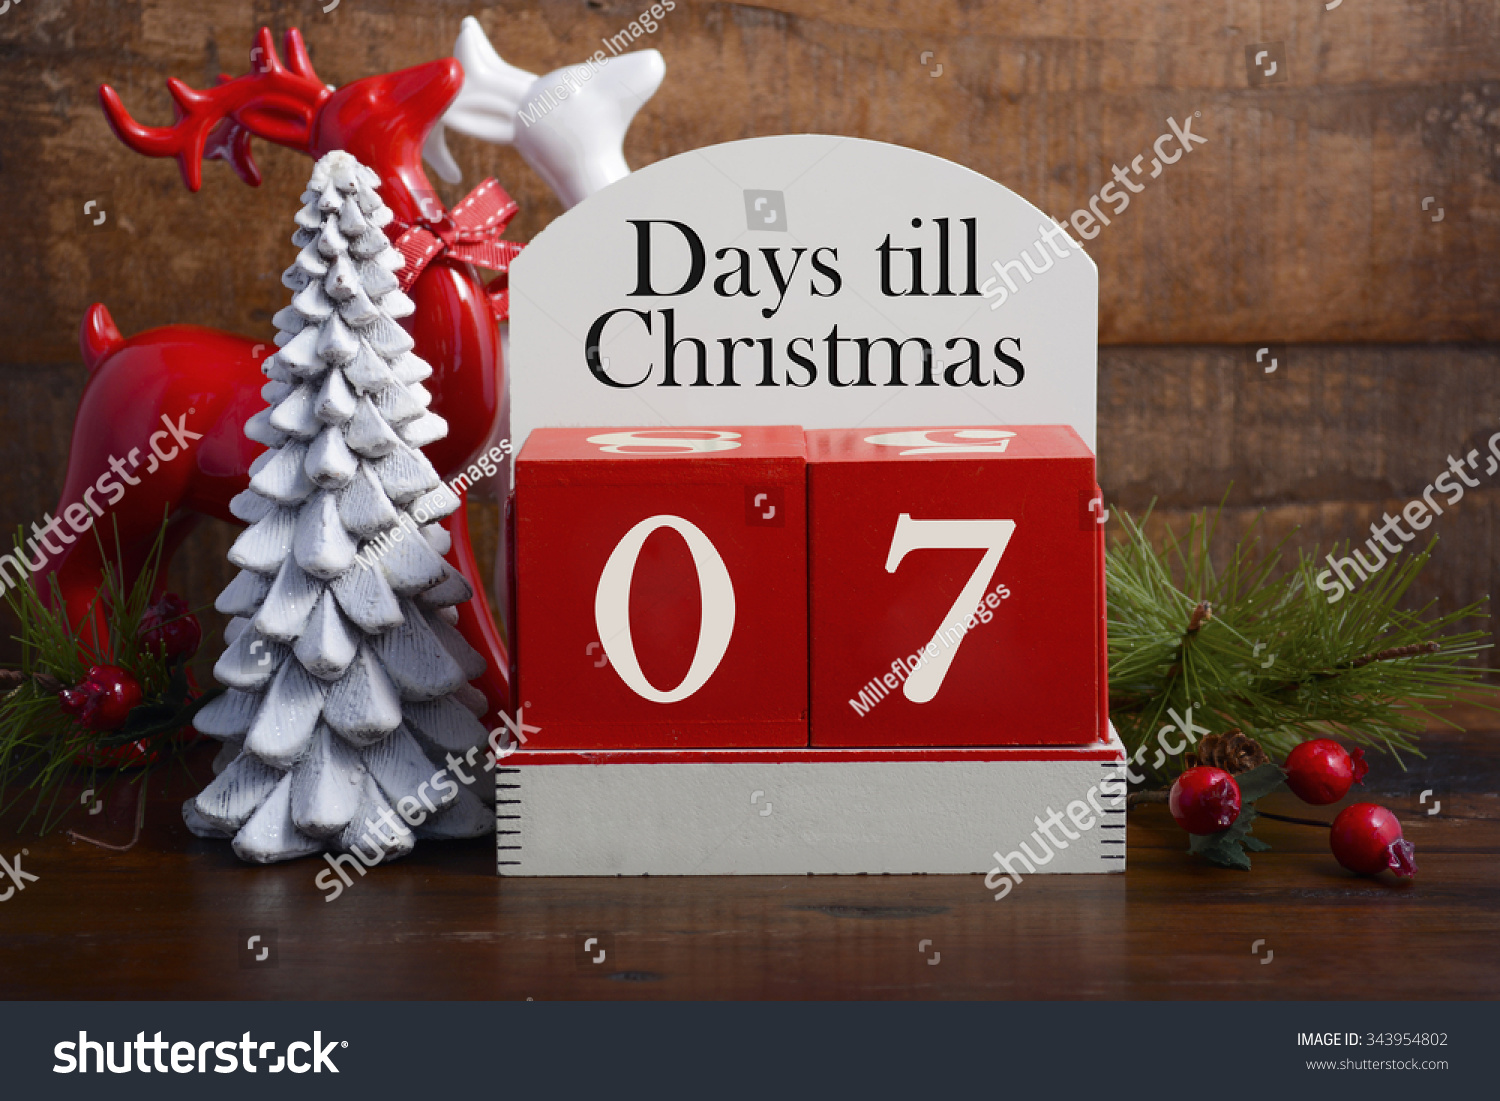 7 Days Till Christmas Vintage Style Stock Photo 343954802 ...